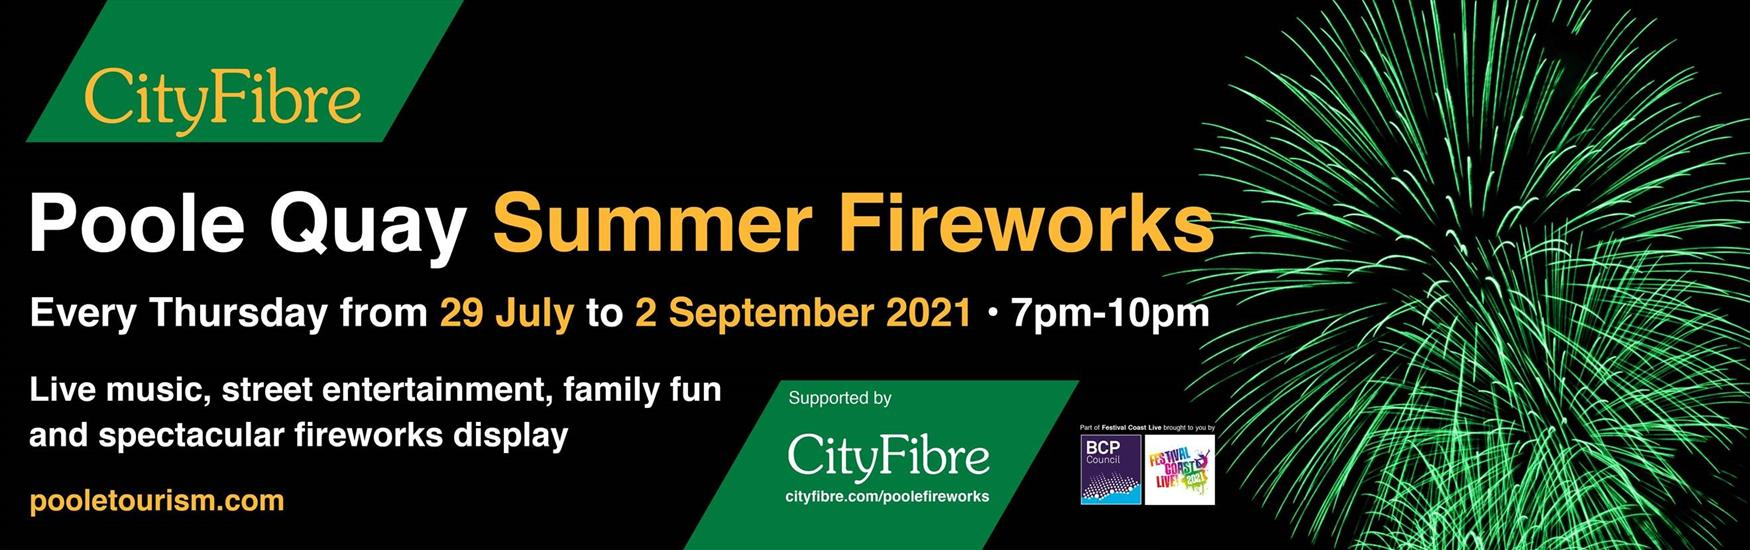 City Fibre banner advertising the Poole quay fireworks from 29th July 2021 to 2nd September 2021